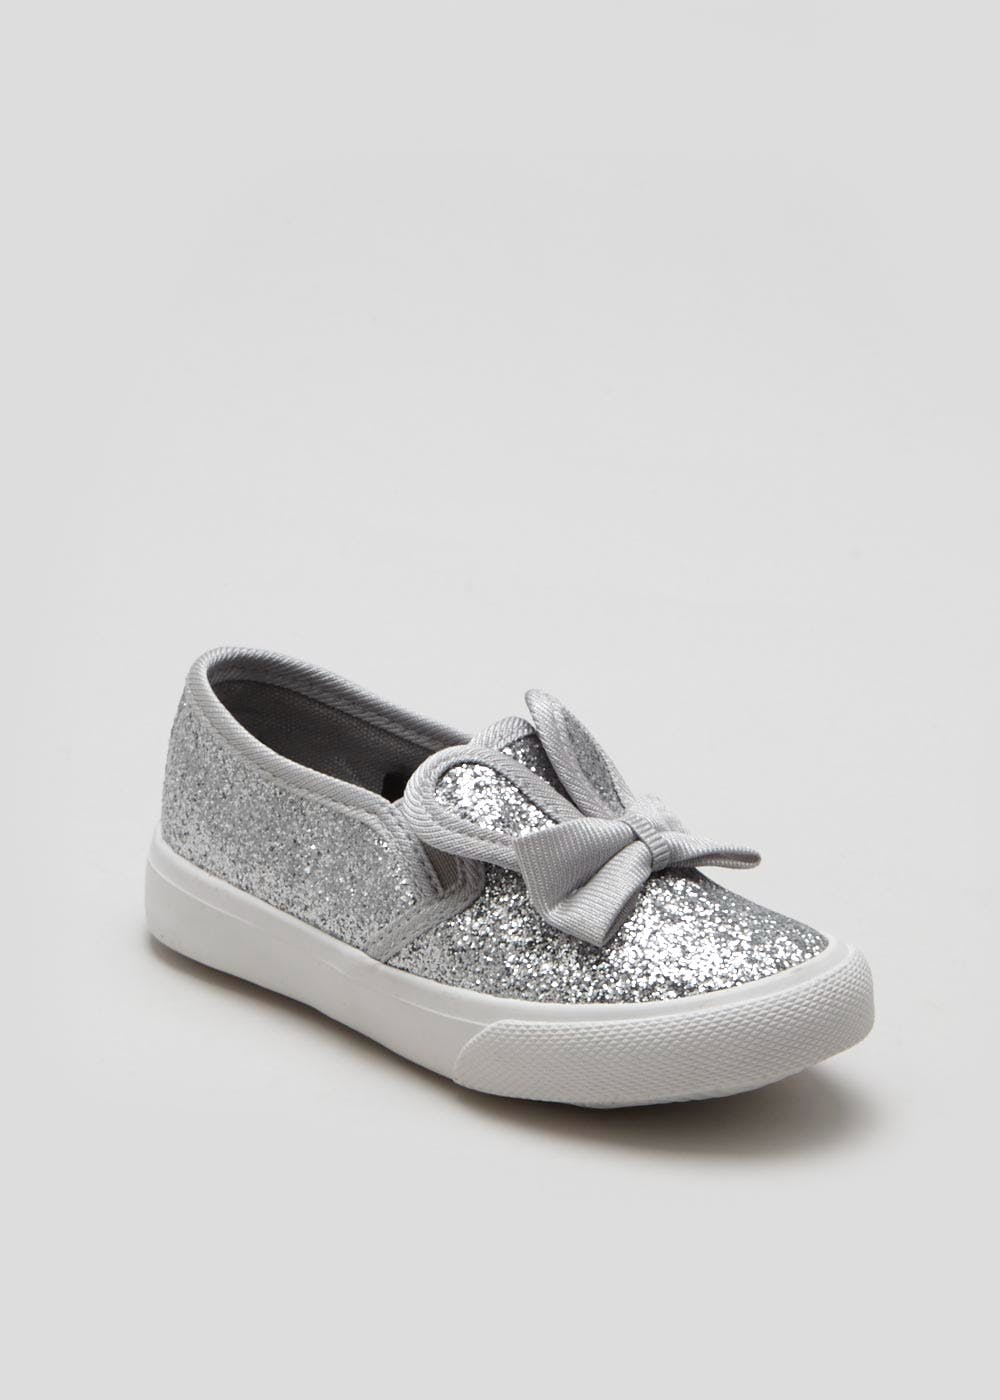 26736dbcc733 Girls Bunny Slip On Pumps (Younger Kids 4-12) – Silver – Matalan